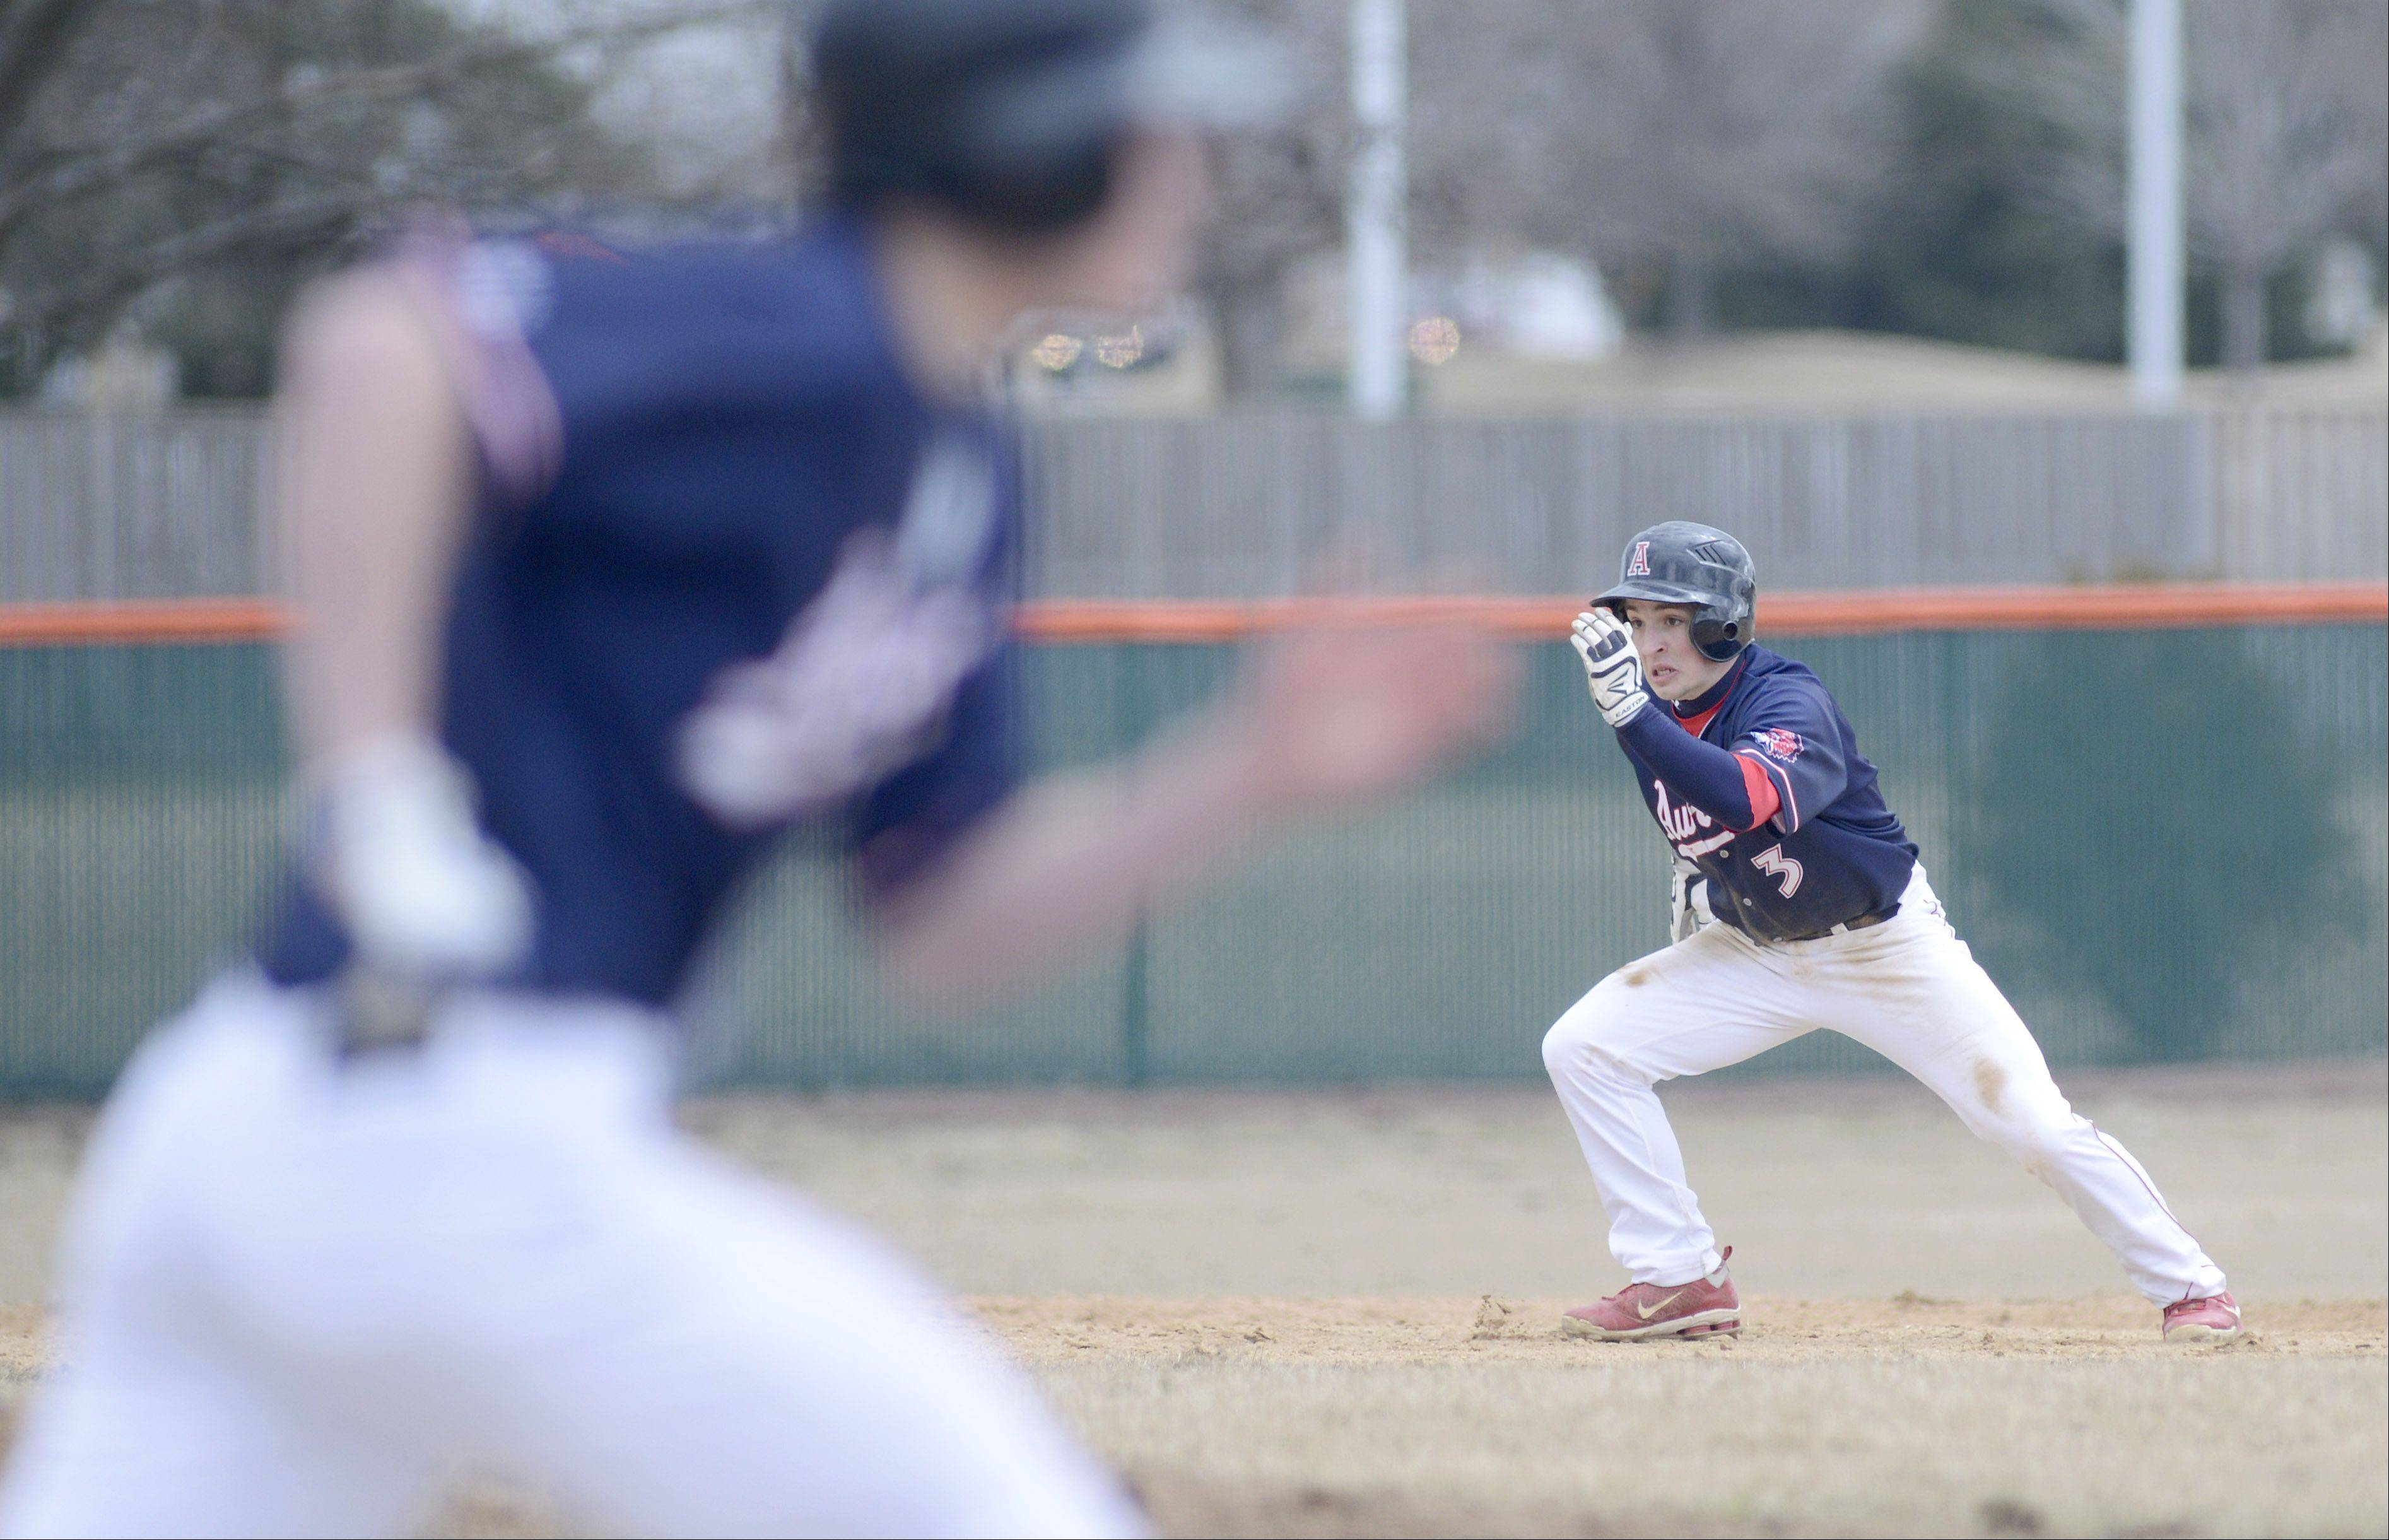 West Aurora's Adam Lipscomb races for third base in the third inning vs. St. Charles East on Tuesday, March 26.